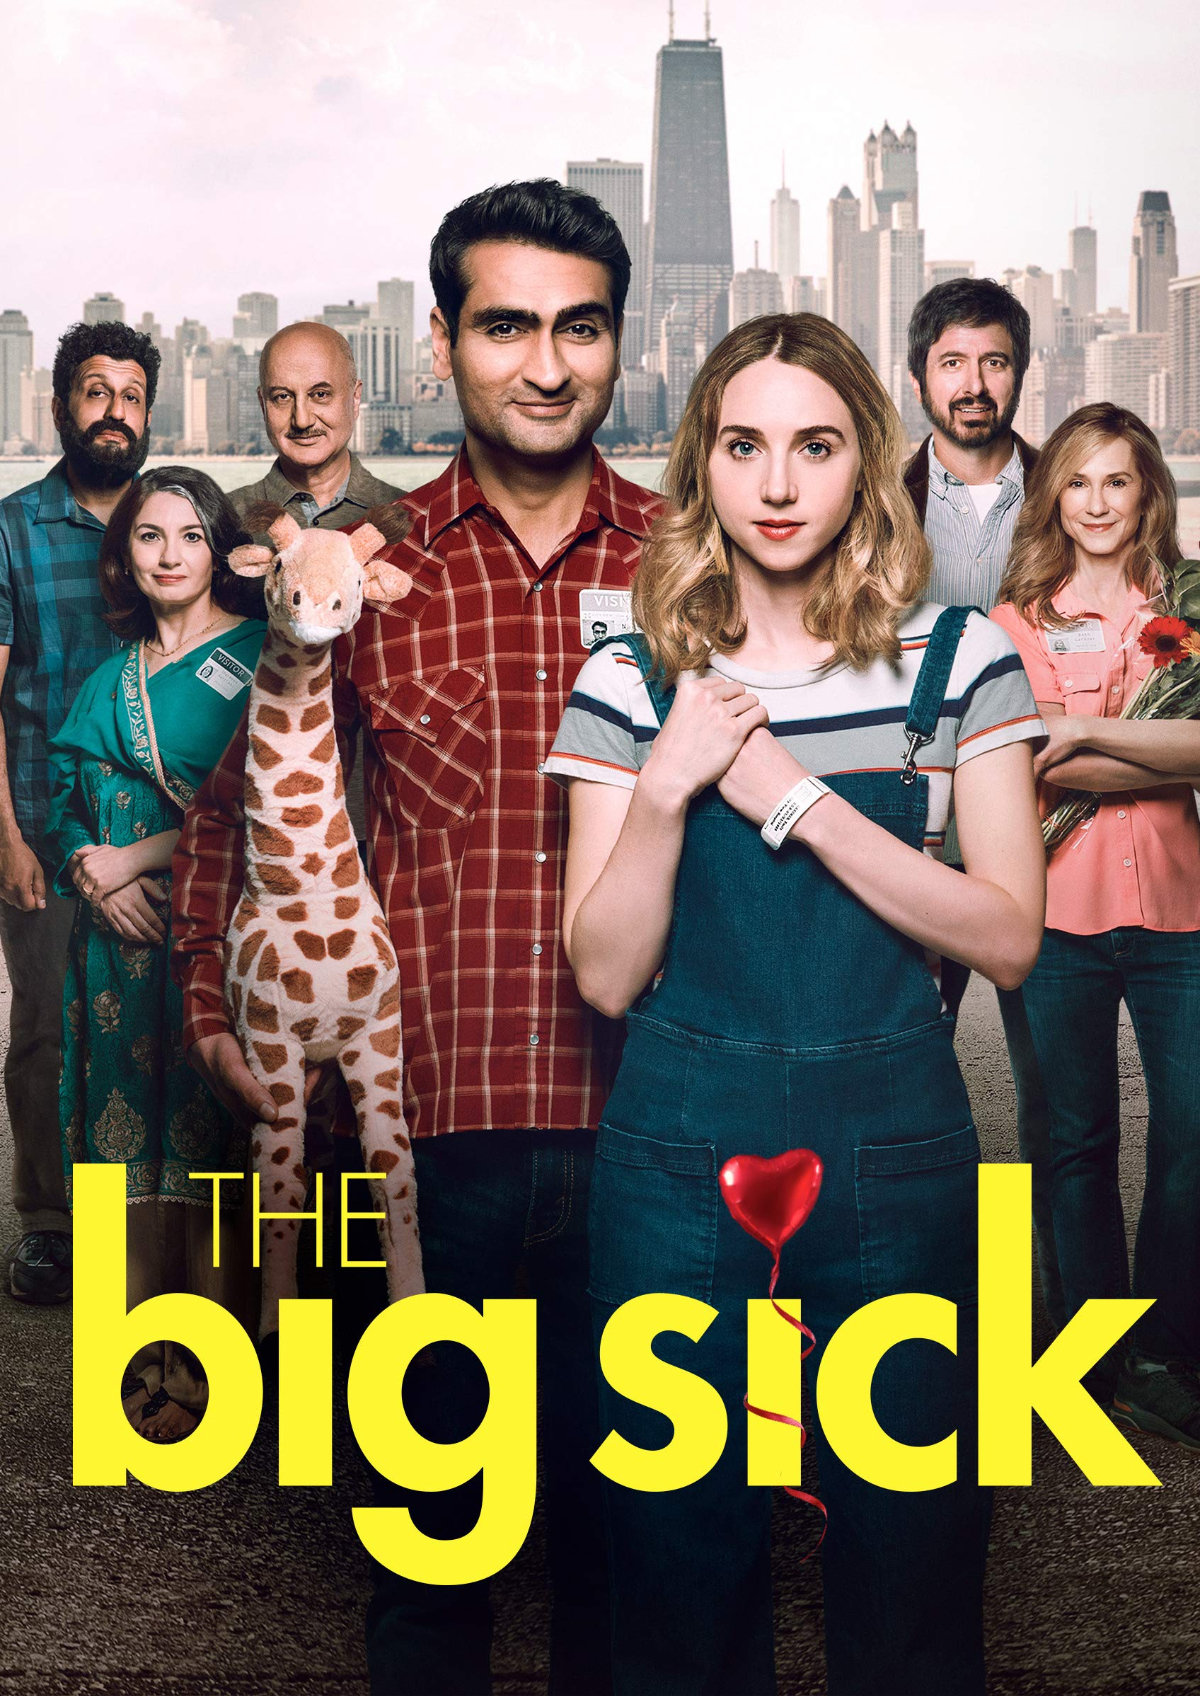 'The Big Sick' movie poster